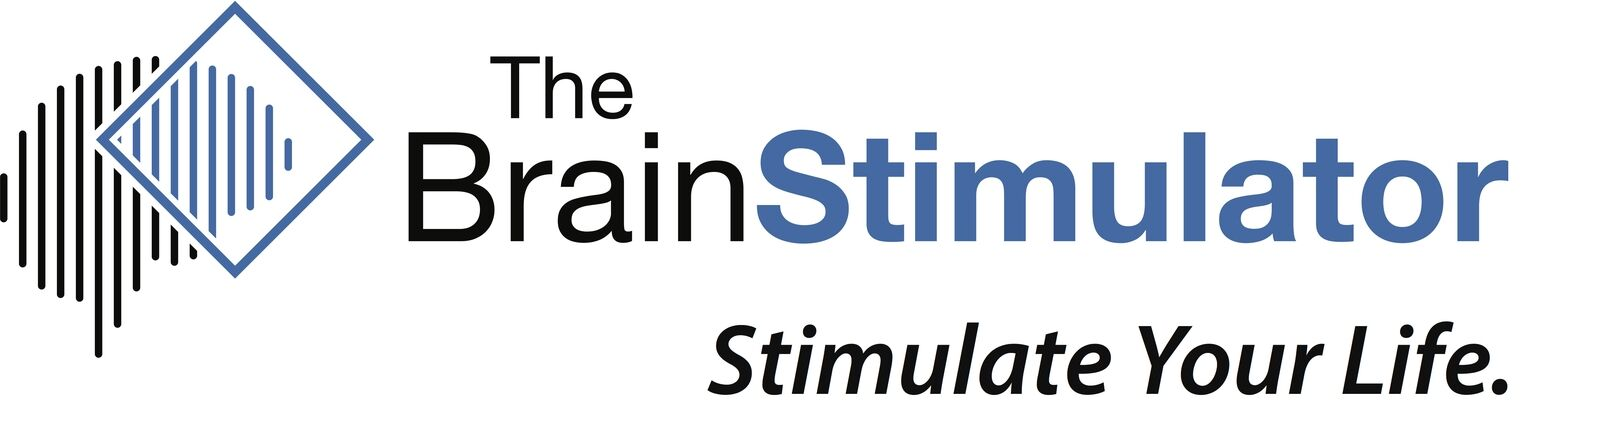 The Brain Stimulator